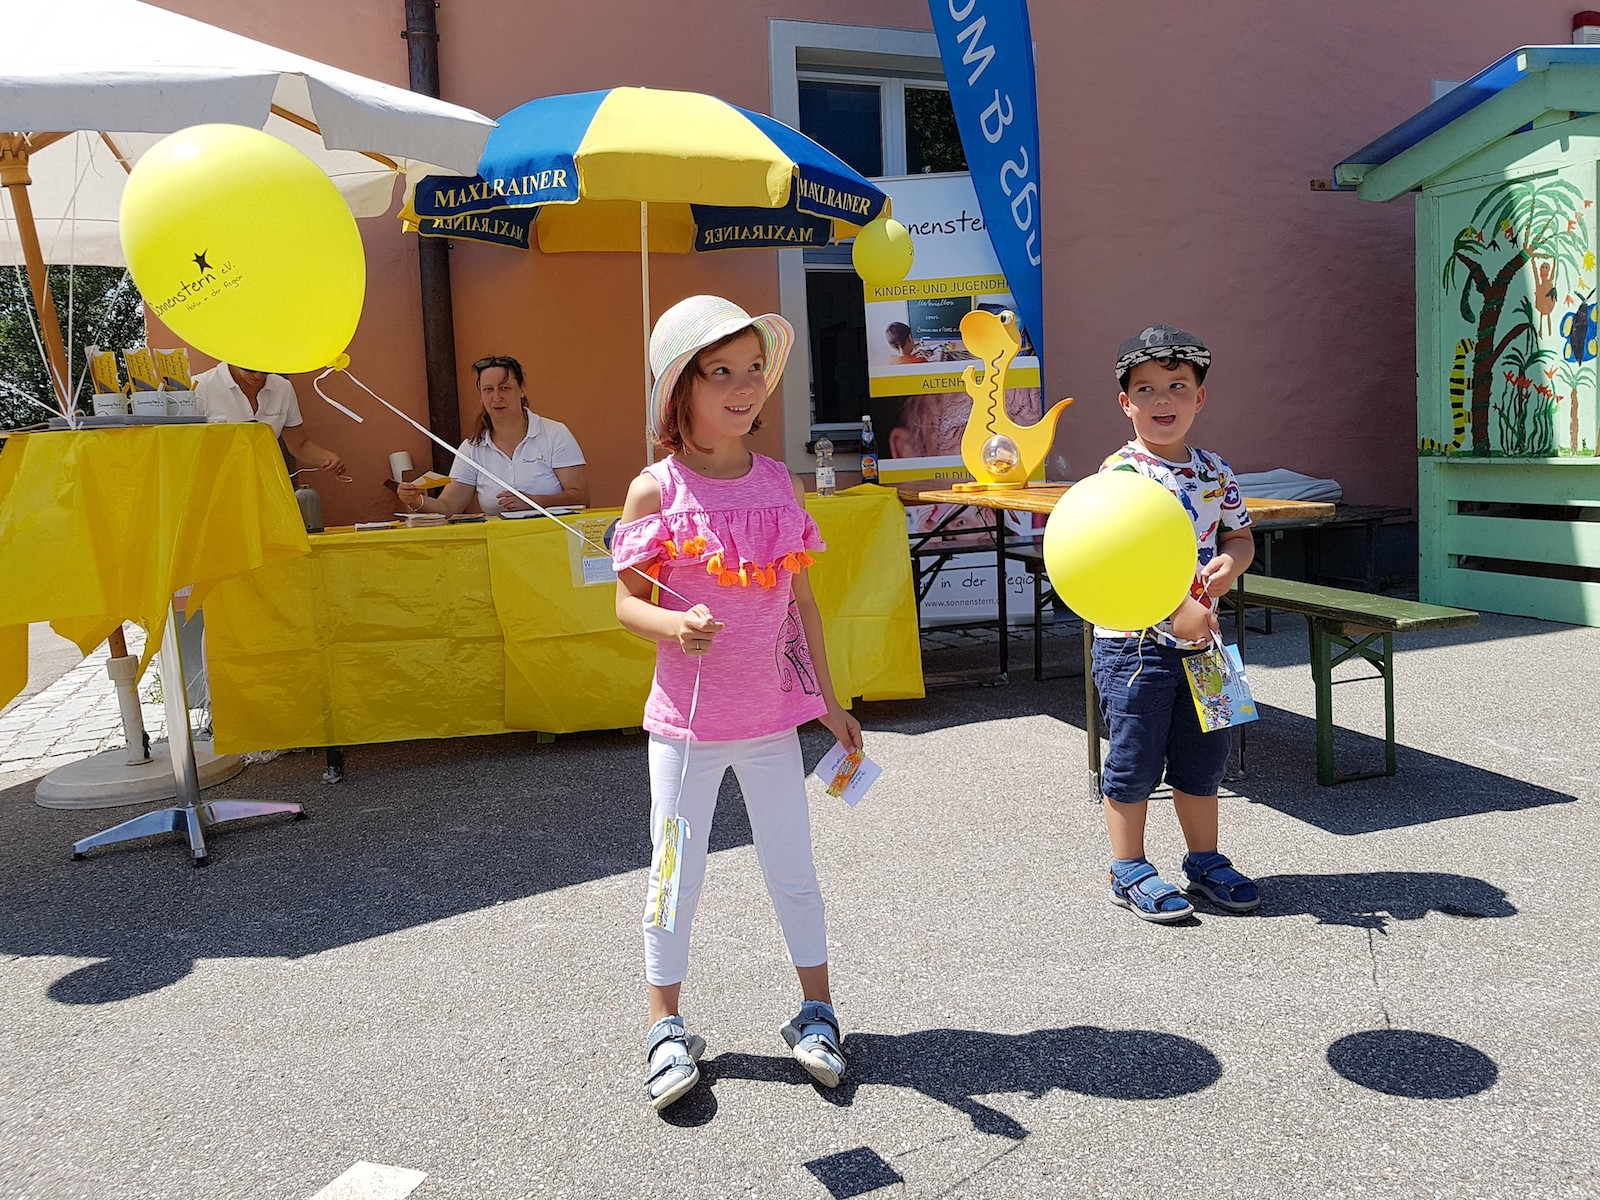 20180714 Buergerfest Bad Aibling 01.jpg